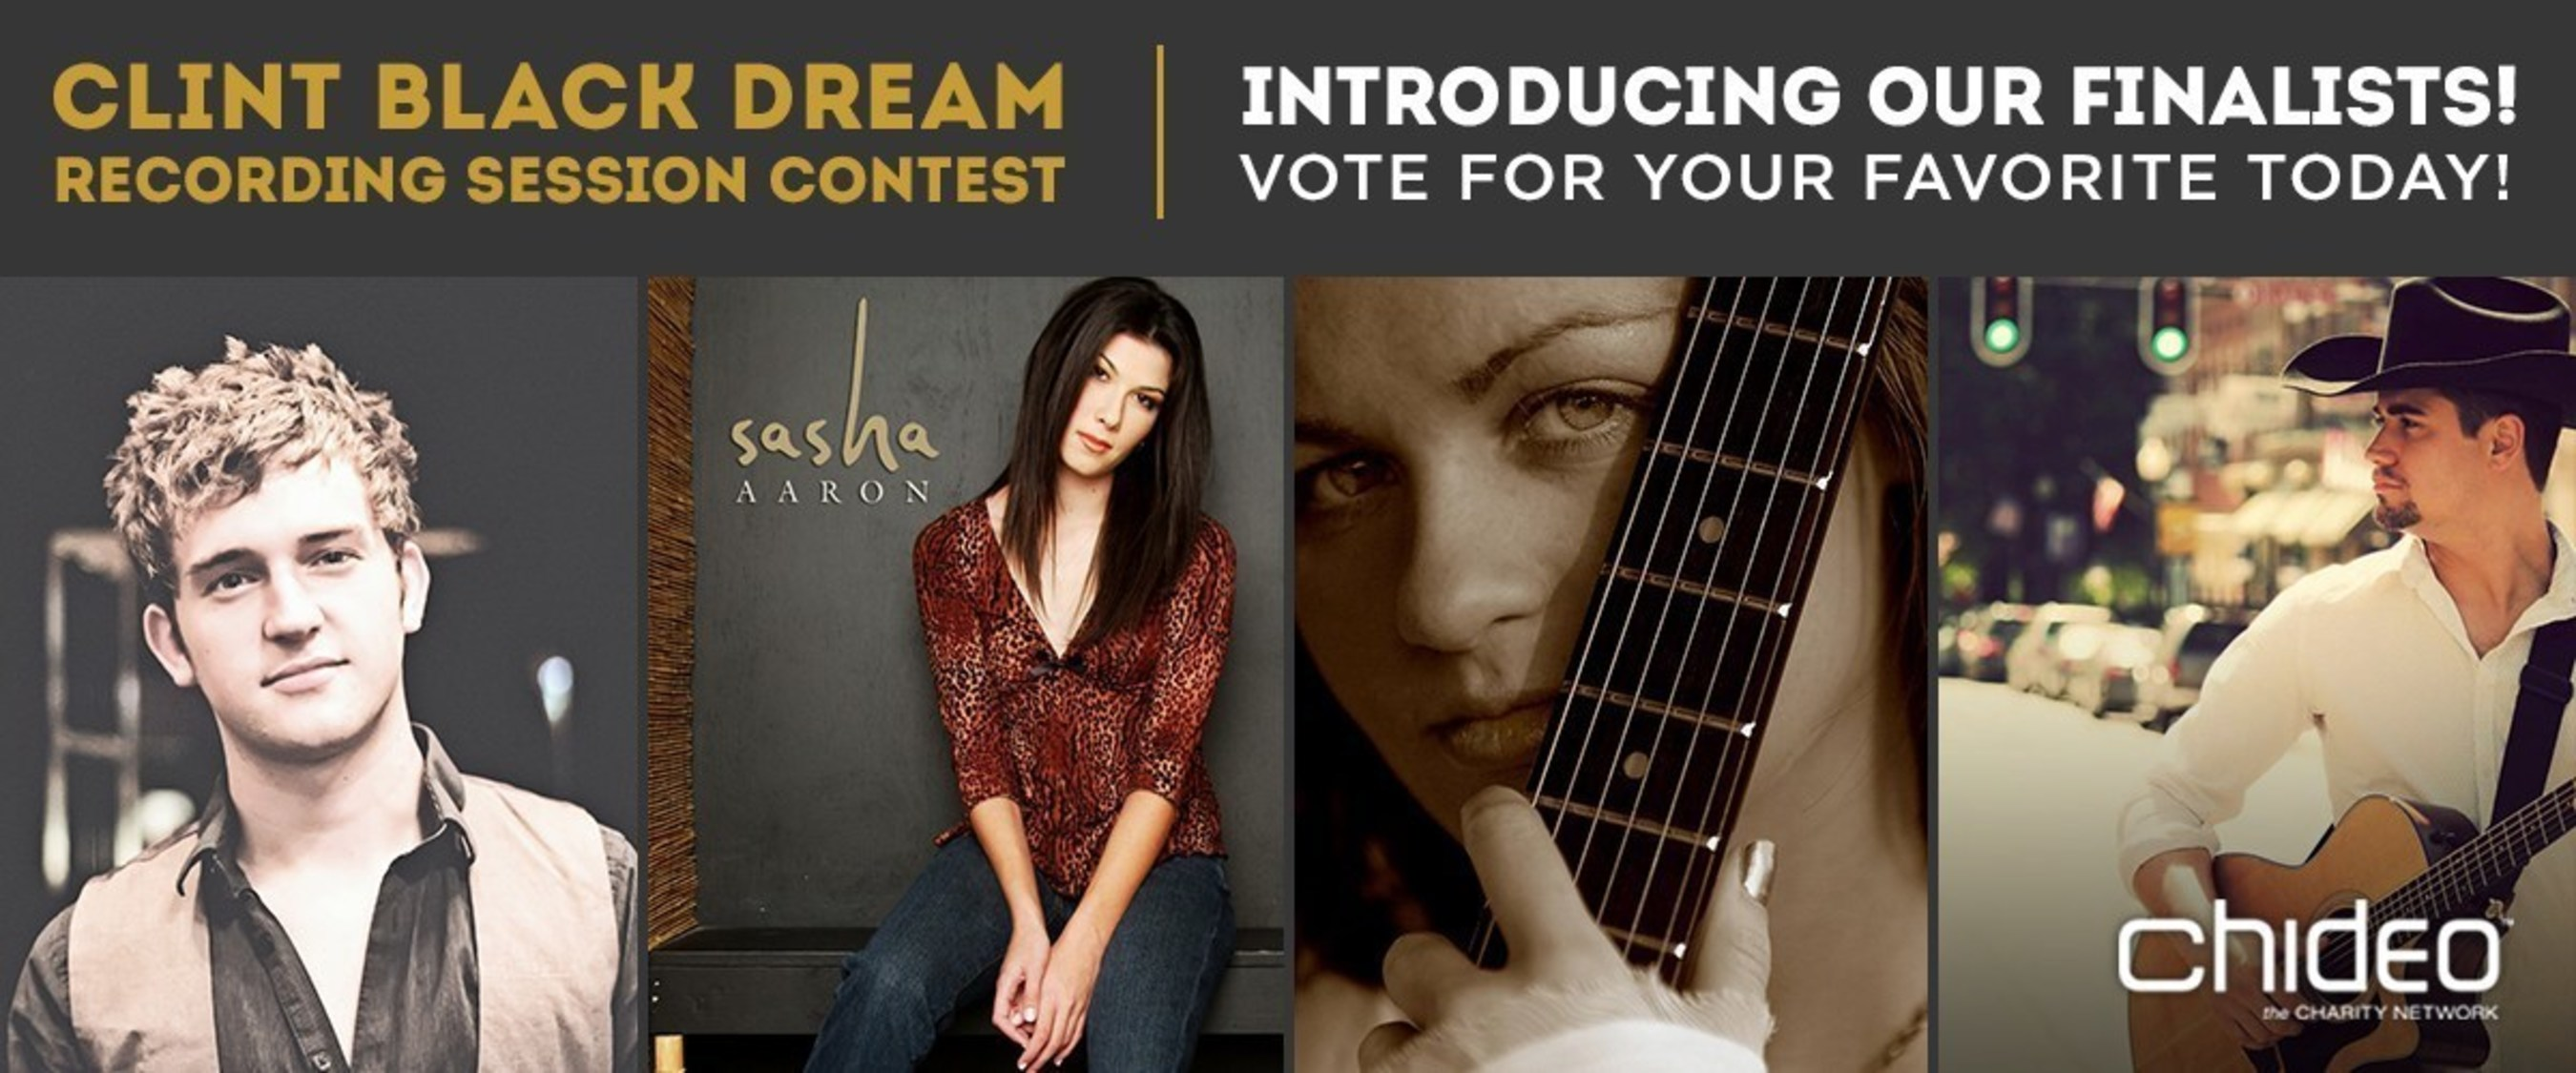 The finalists are in! Head to Chideo.com to vote for your favorite original song and the winner gets the opportunity to record with county superstar Clint Black. After you vote, you can donate to rettsyndrome.org to win the chance to have dinner with Clint himself!